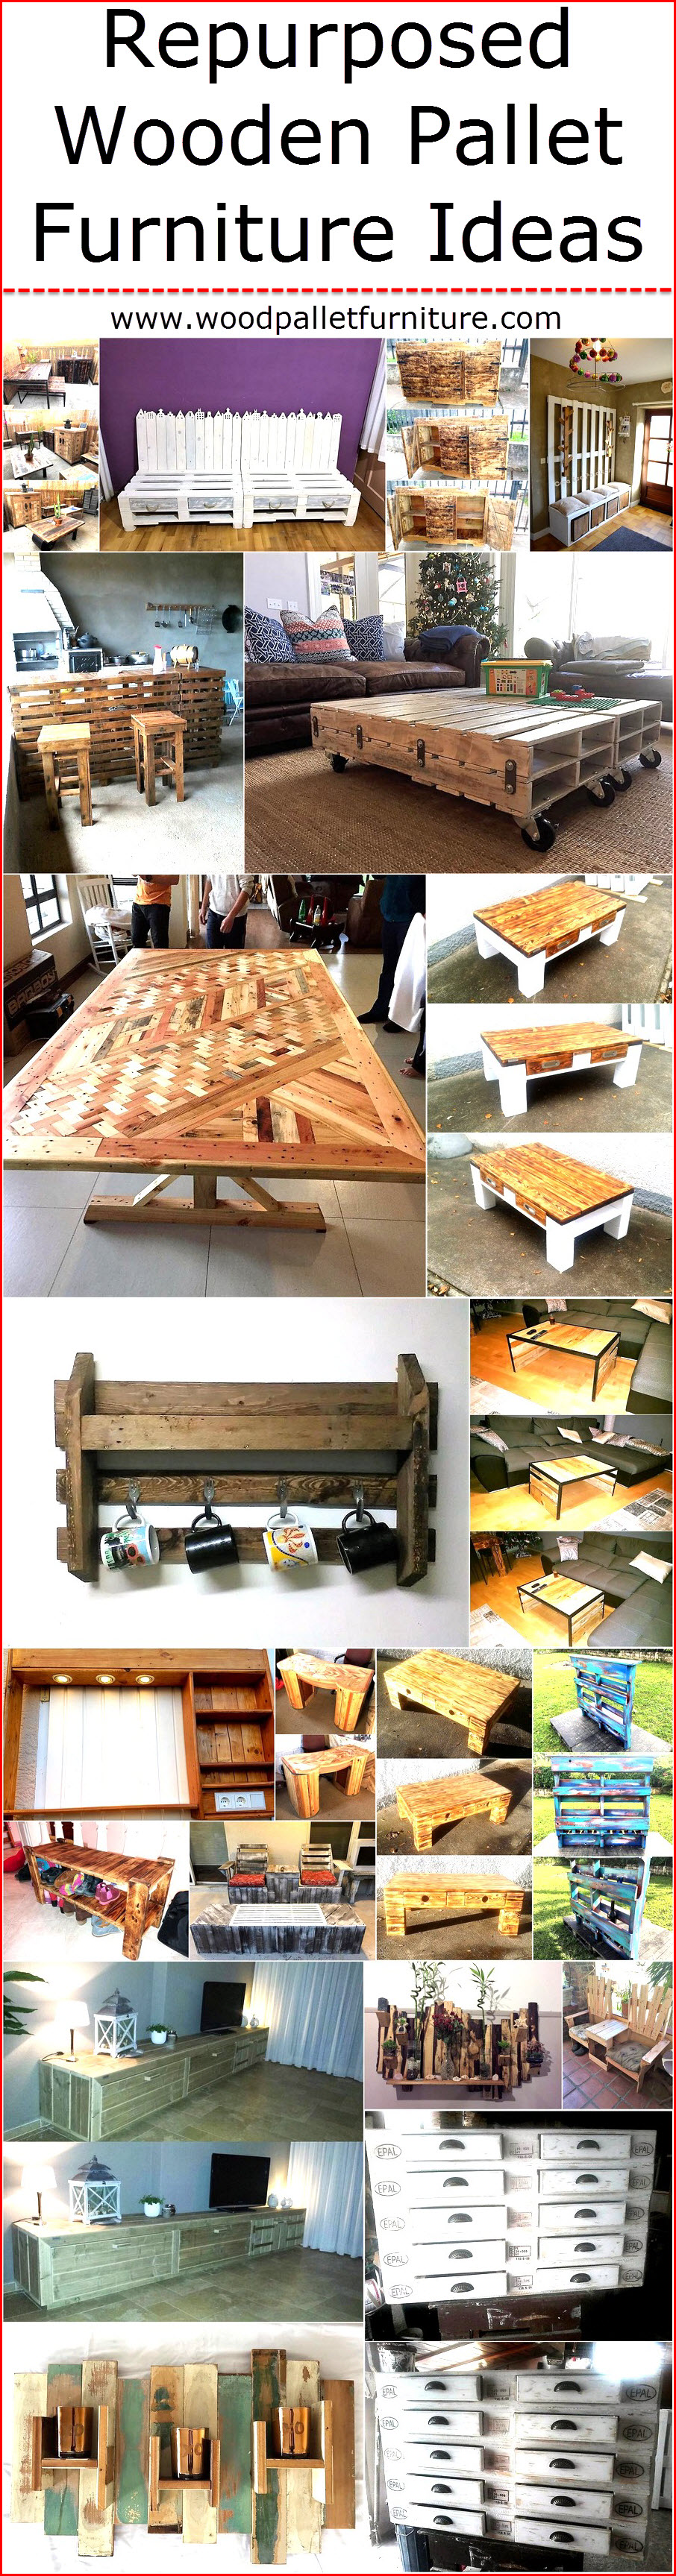 repurposed-wooden-pallet-furniture-ideas